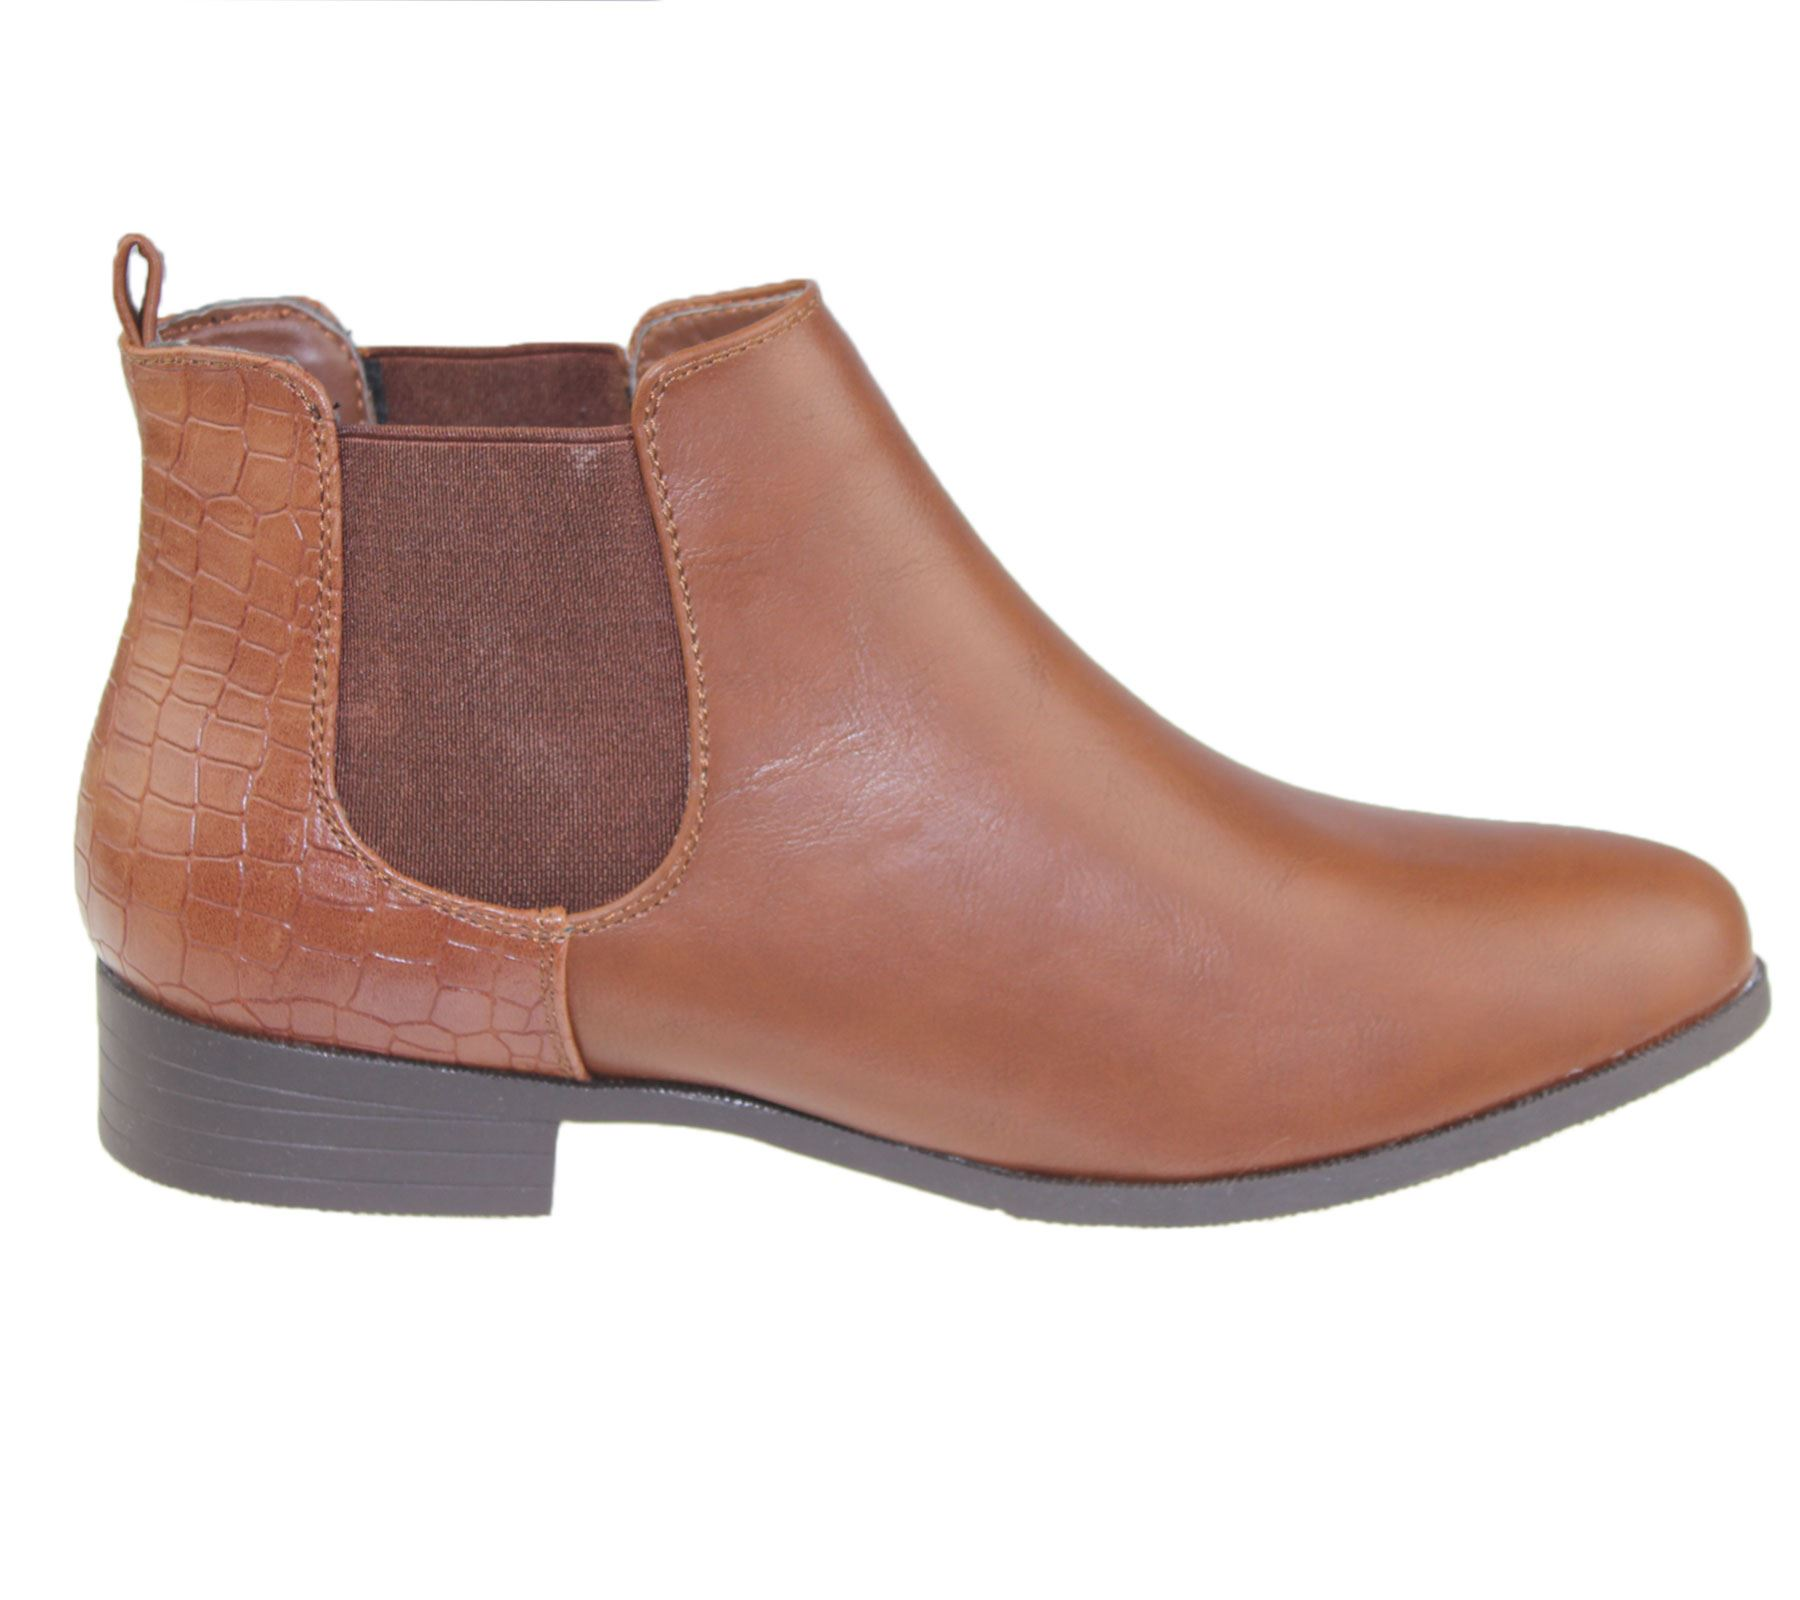 Runway inspired ankle boots and booties take you from morning meetings to Saturday nights. Enjoy free shipping and free returns! womens ankle boots. Chelsea Boots (14) Desert Boot (5) Heels (10) Lace Up (24) Loafers & Slip ons (1) Mid Calf Boots.